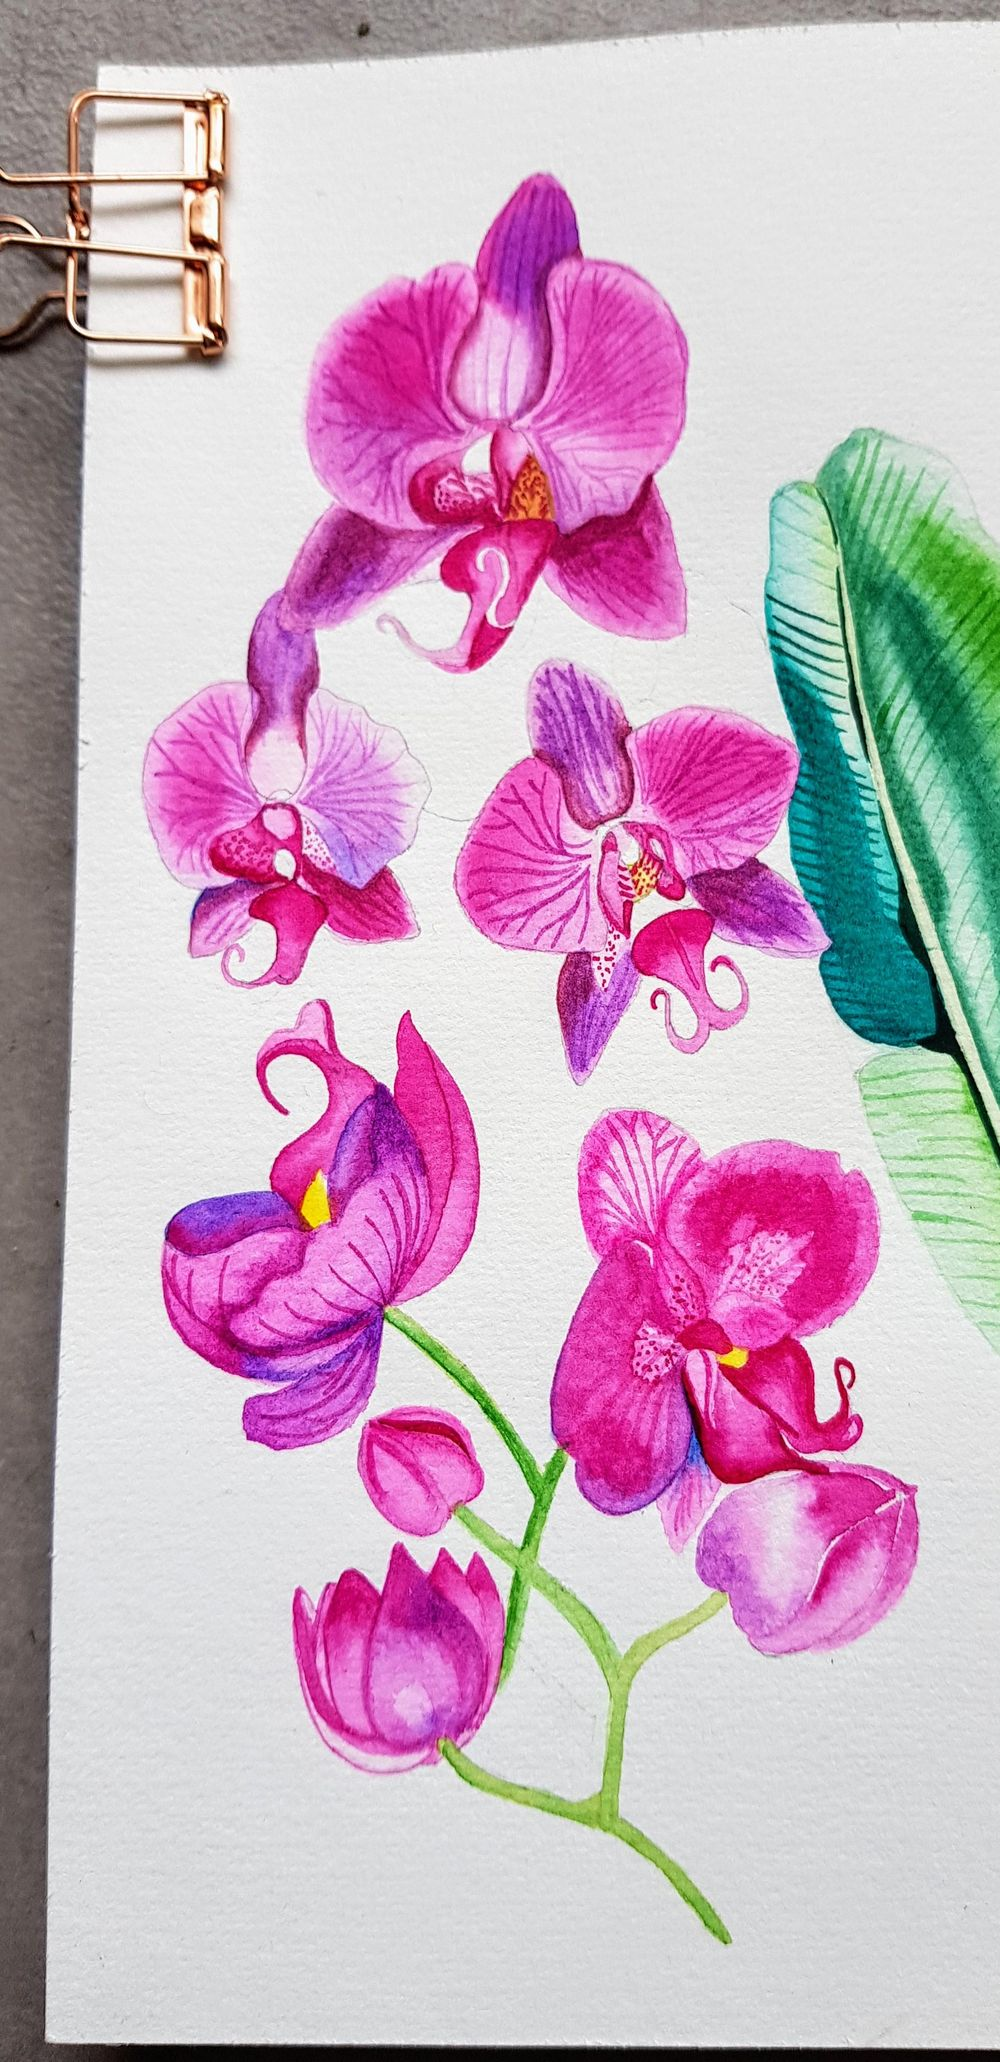 Orchids watercolours - image 2 - student project